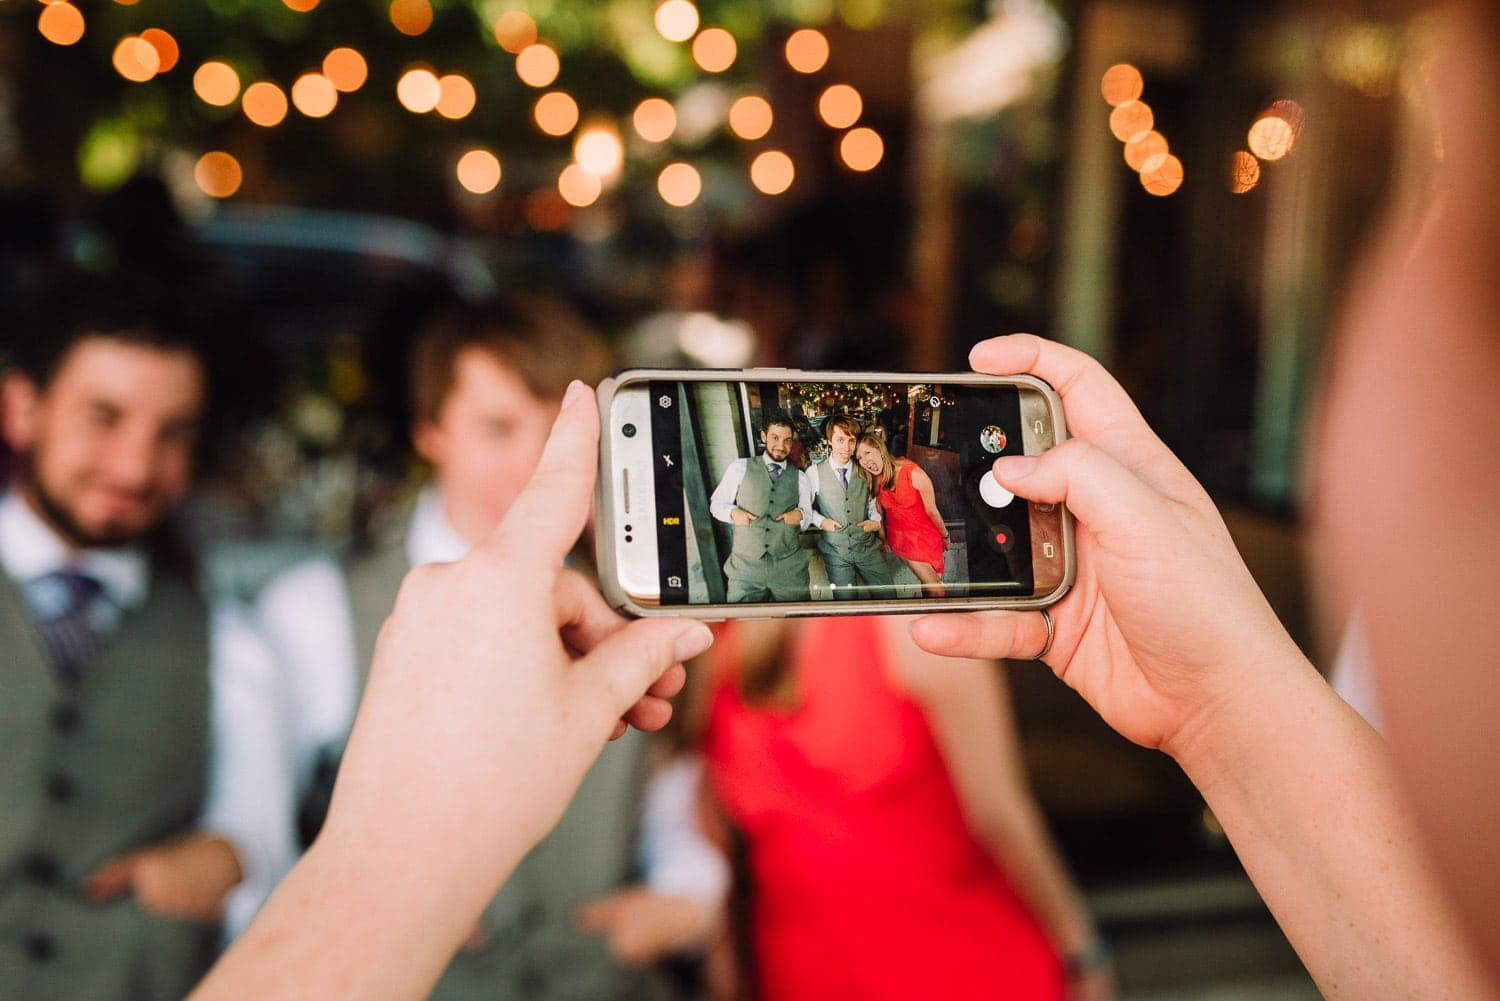 Close view of a smartphone with the image of two groomsmen and a friend on it.